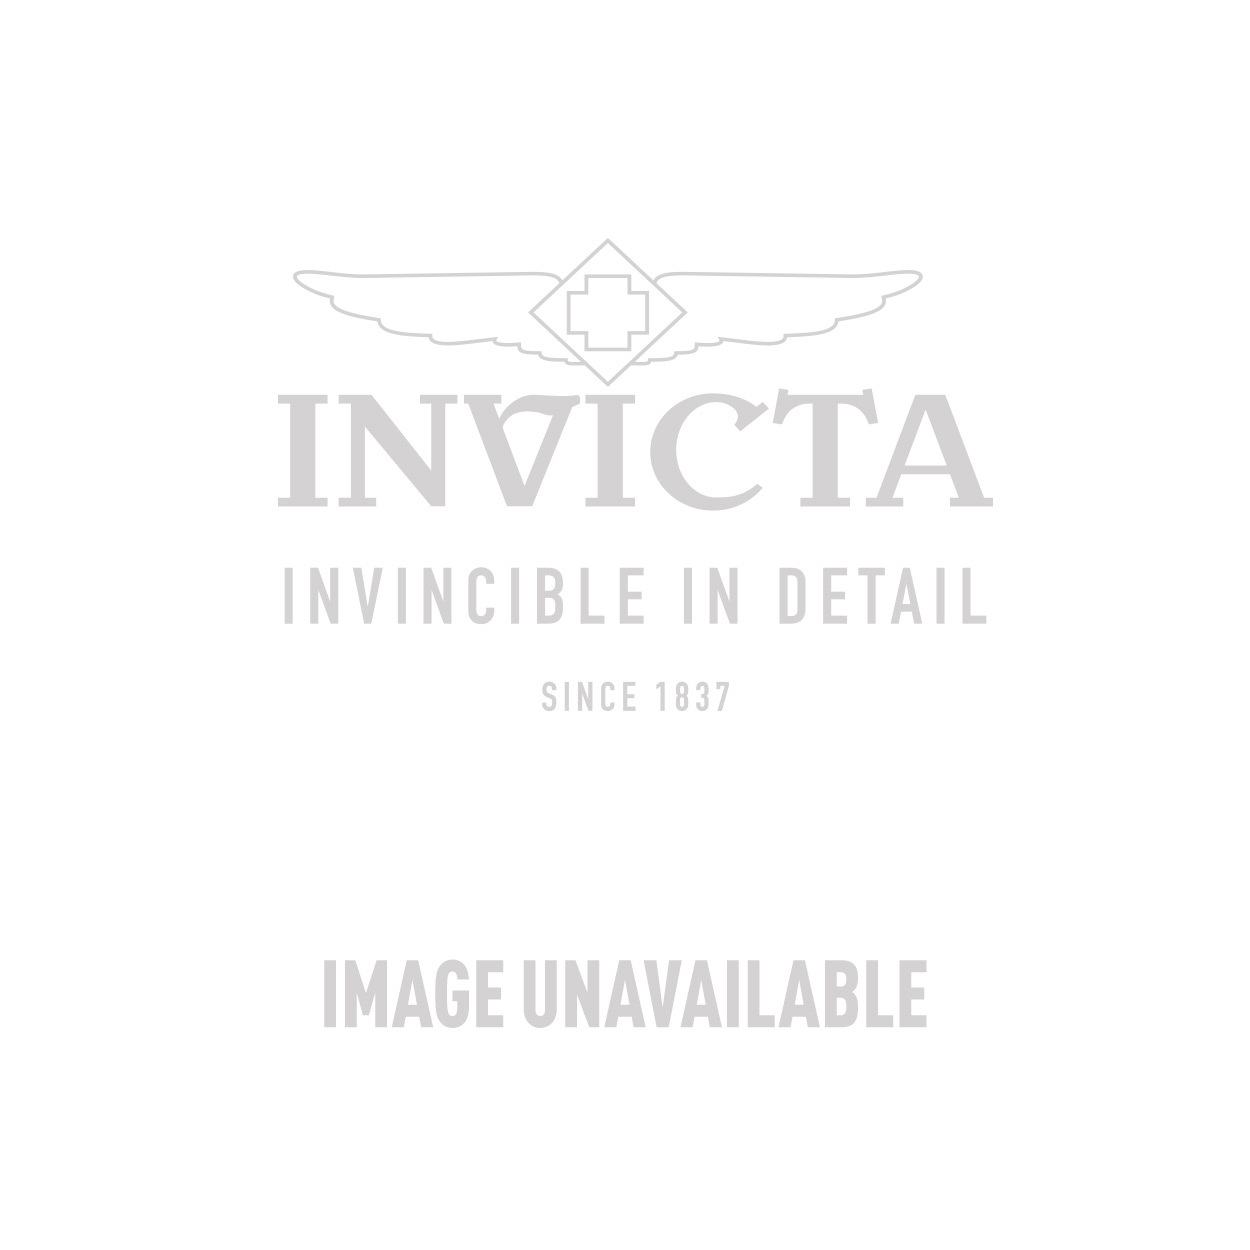 Invicta Pro Diver Swiss Movement Quartz Watch - Stainless Steel case Stainless Steel band - Model 20121